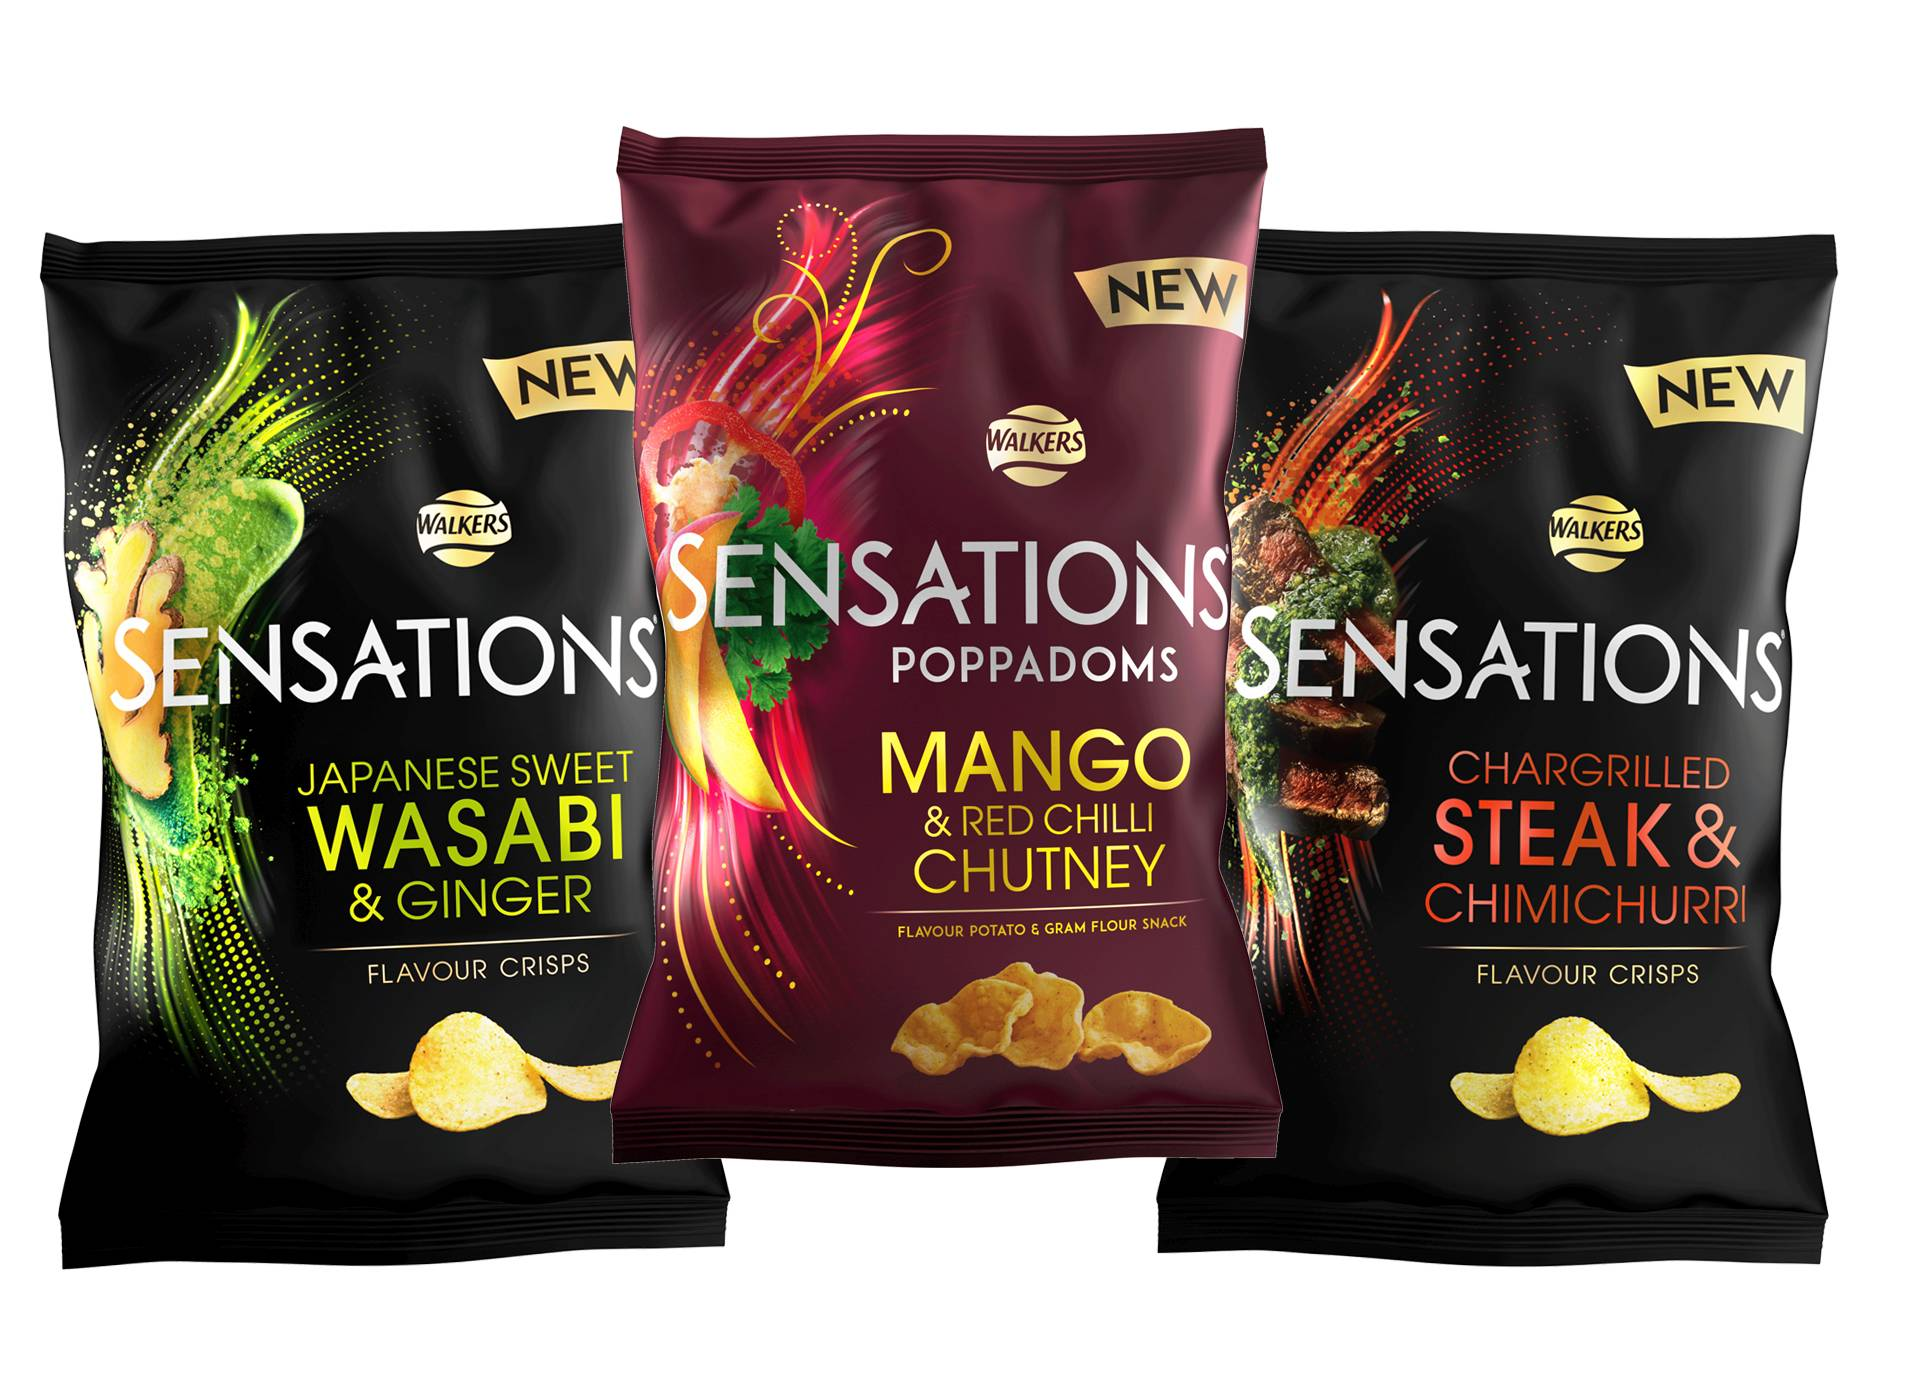 Walkers Revamps Sensations Range And Adds Three New Flavours